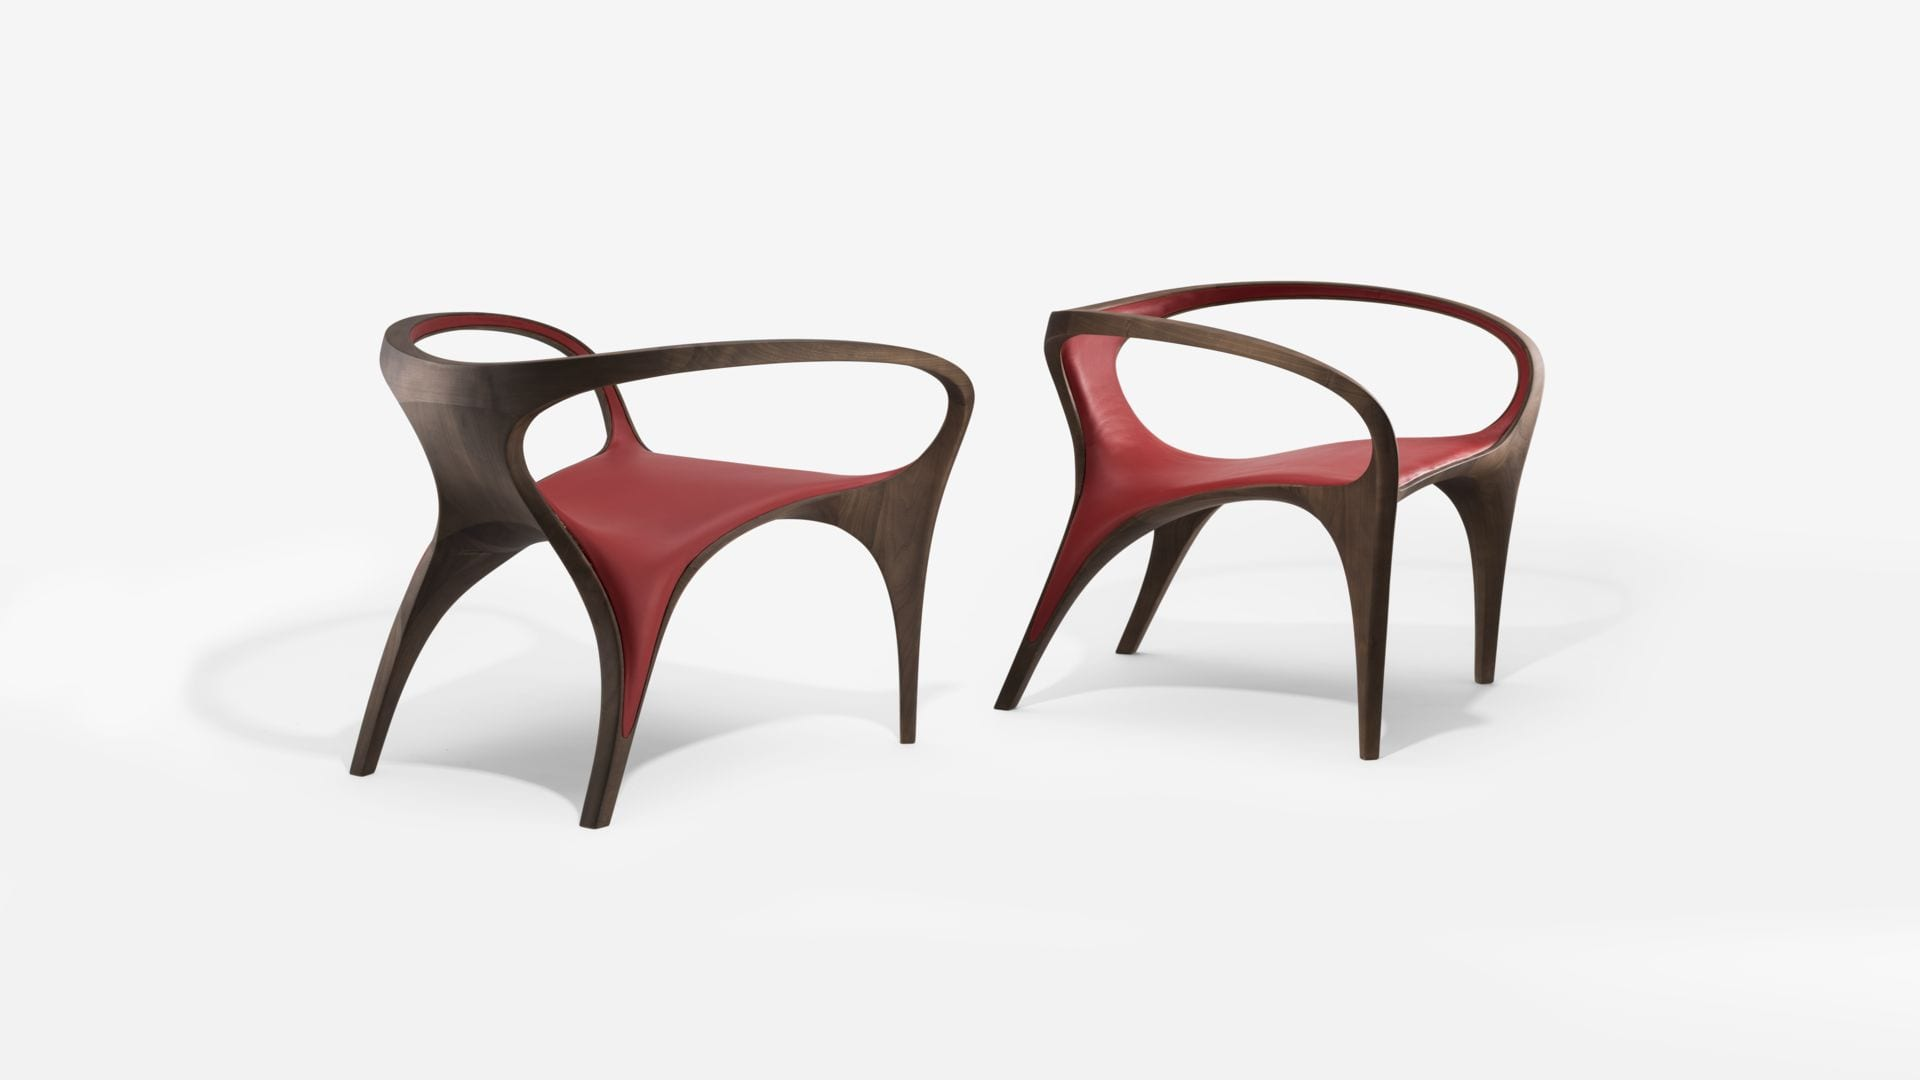 ZHD_Chair Ultra Stellar red pair-092821-HIGH-RES